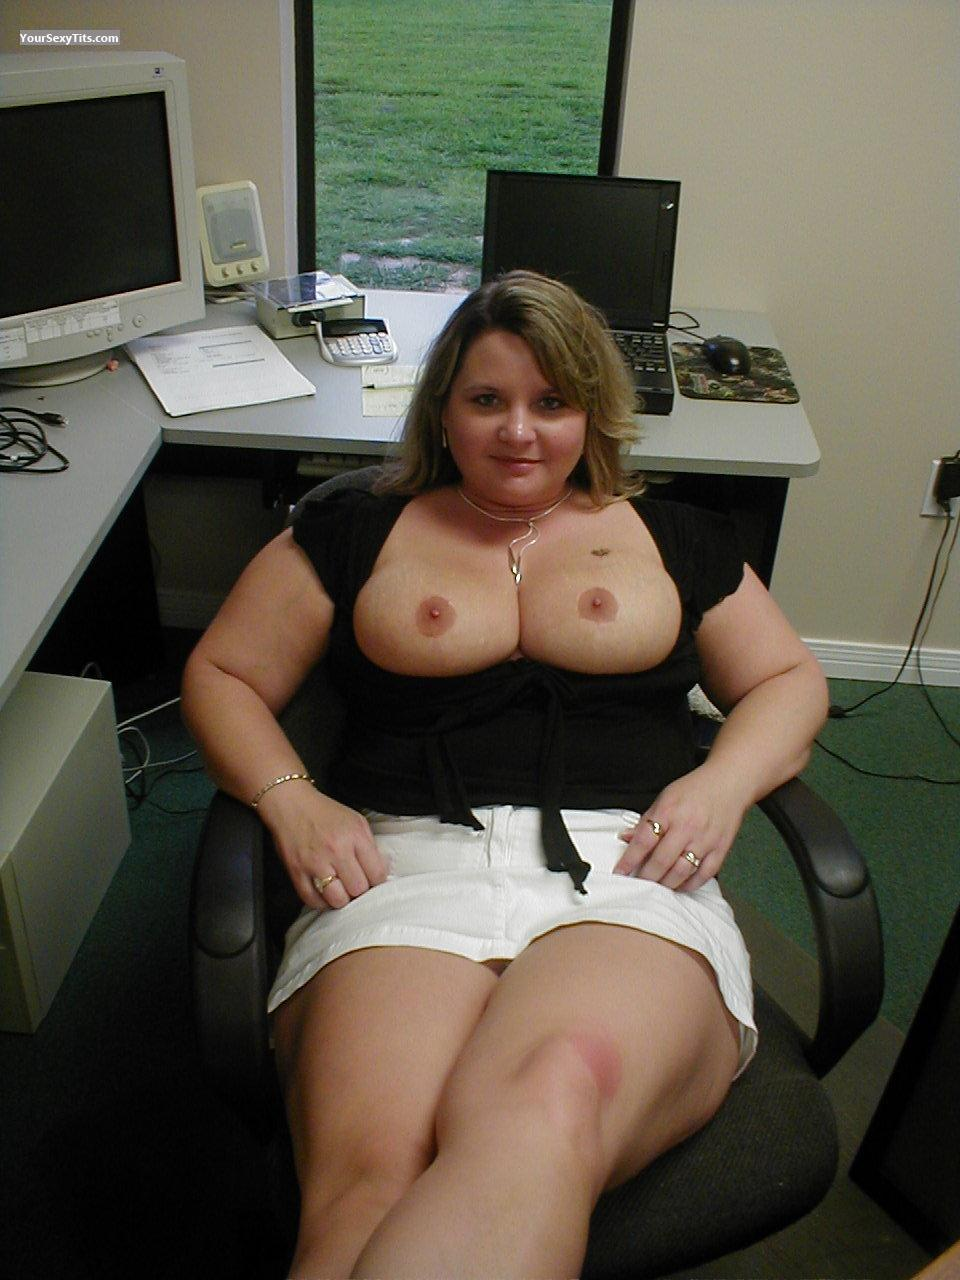 Bigtits at work